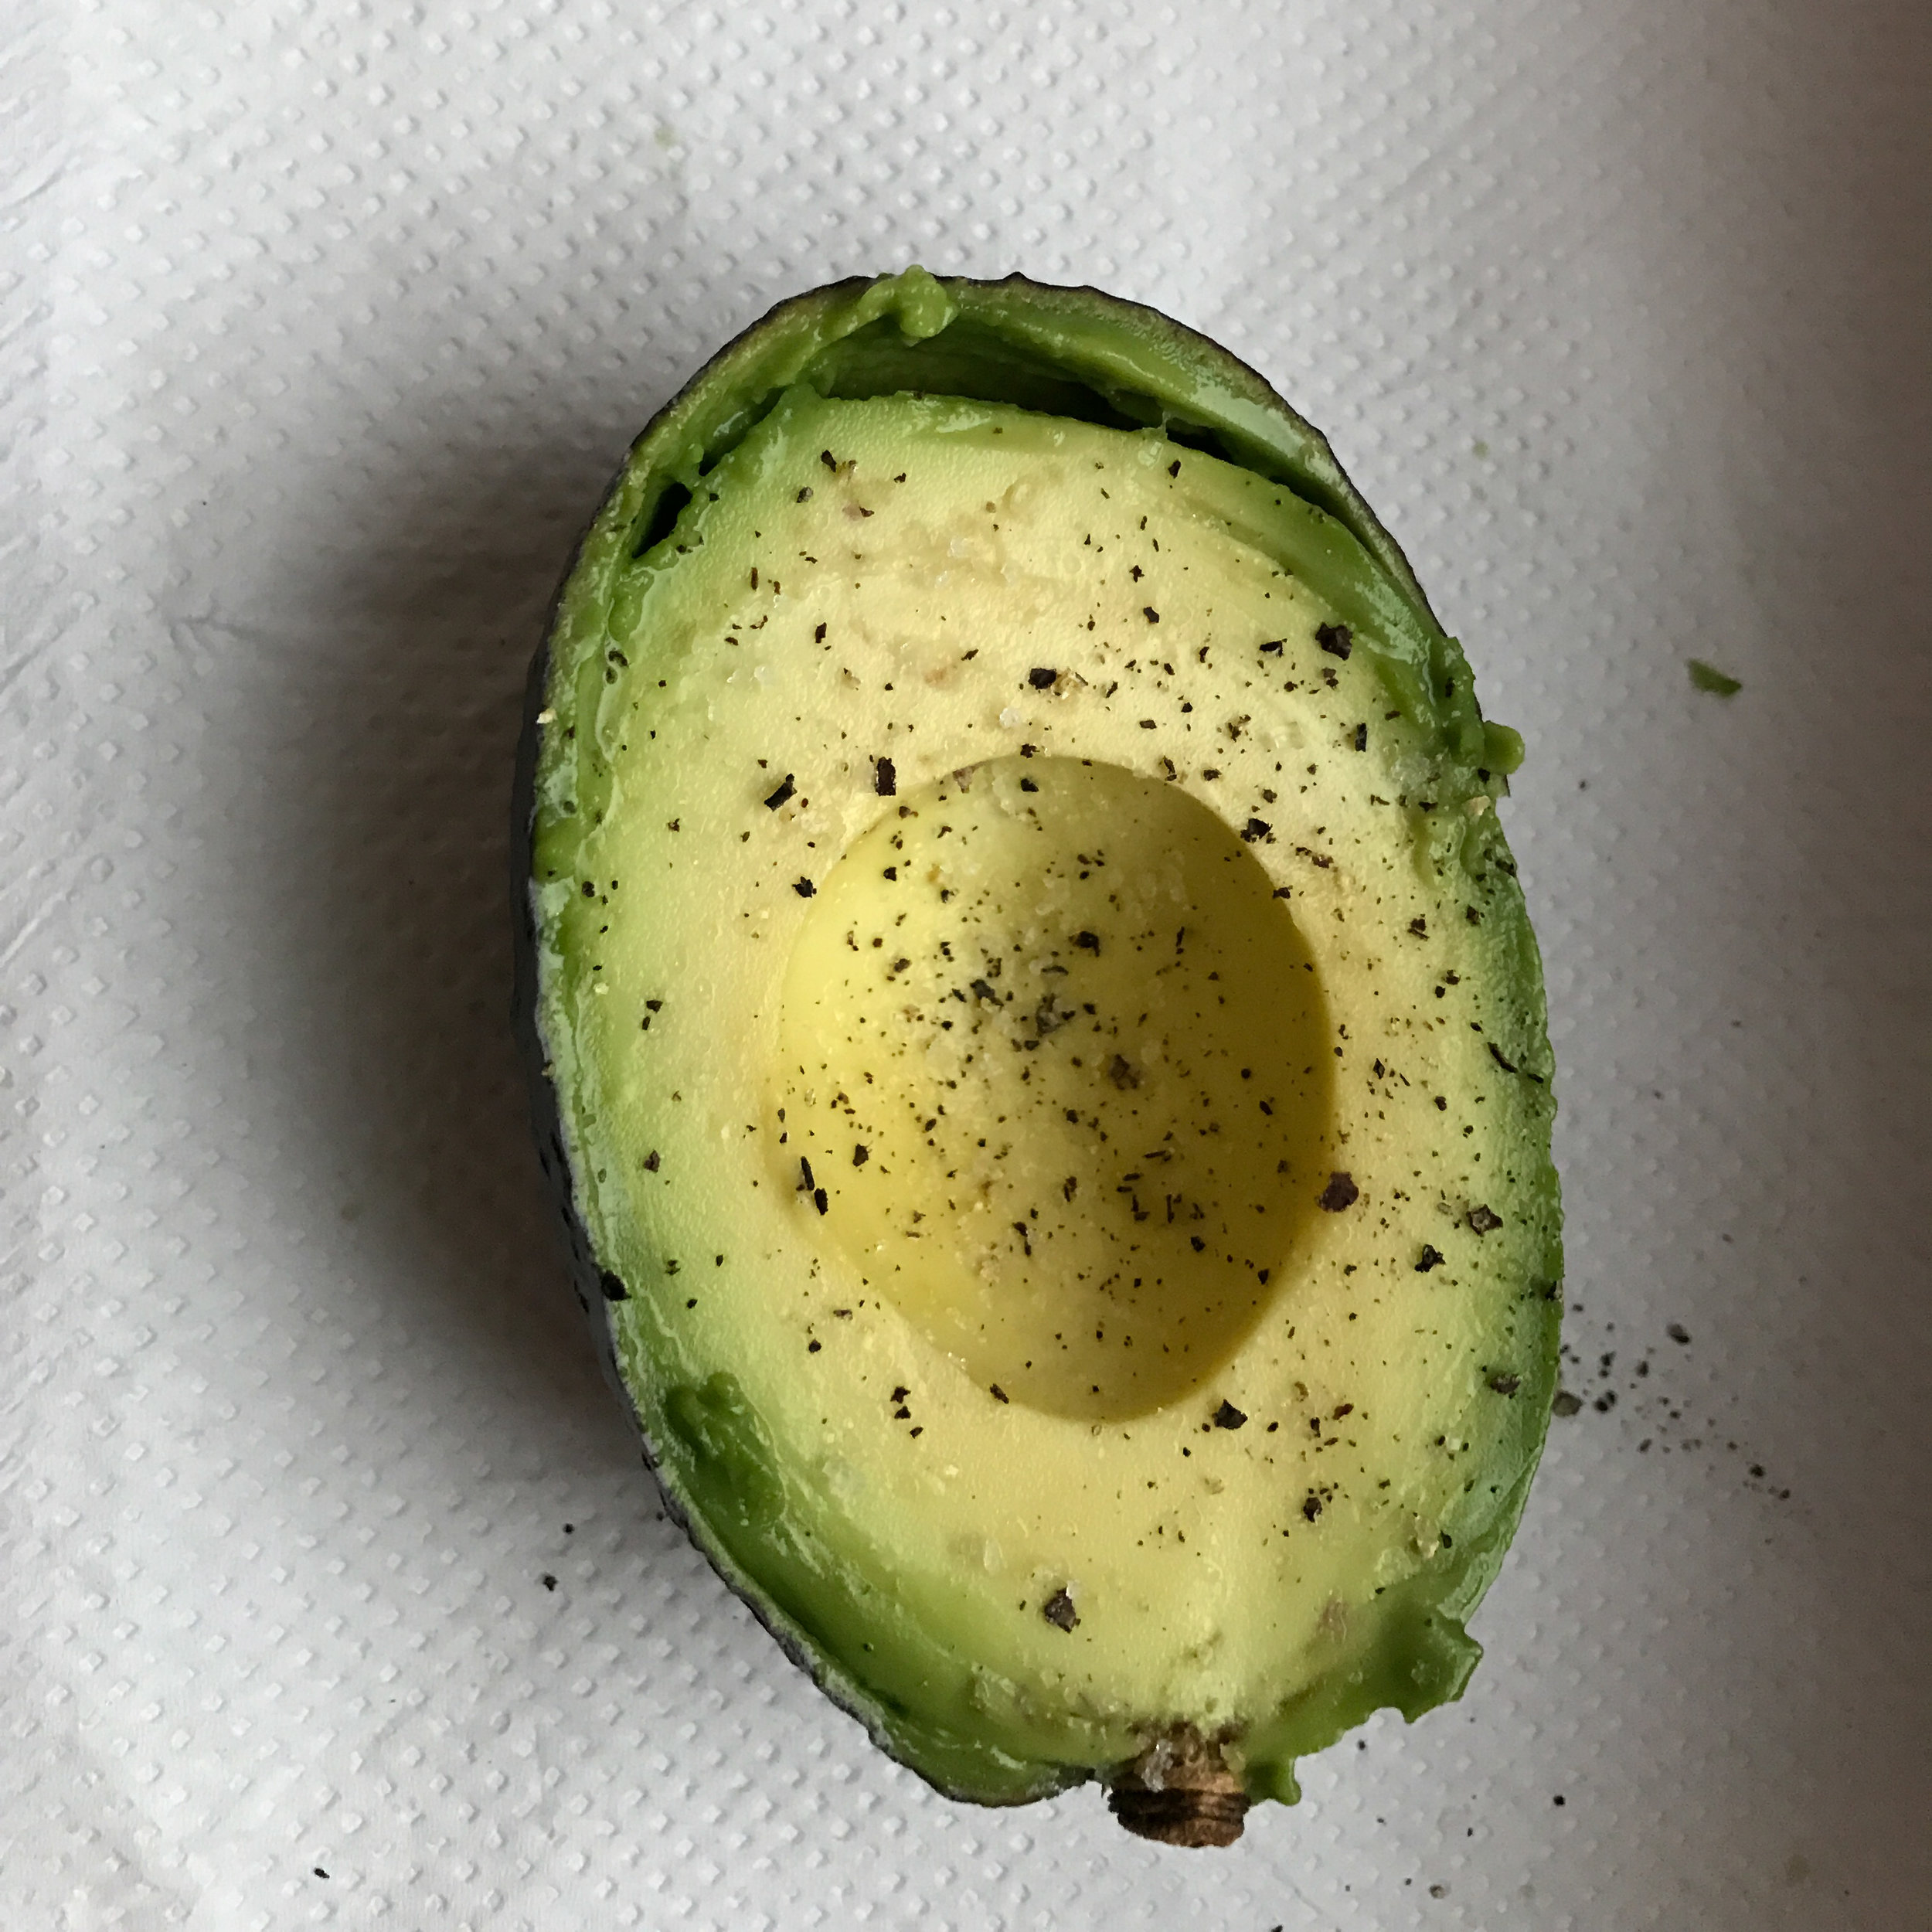 Afternoon Snack : Half a perfectly ripe avocado with salt and pepper.